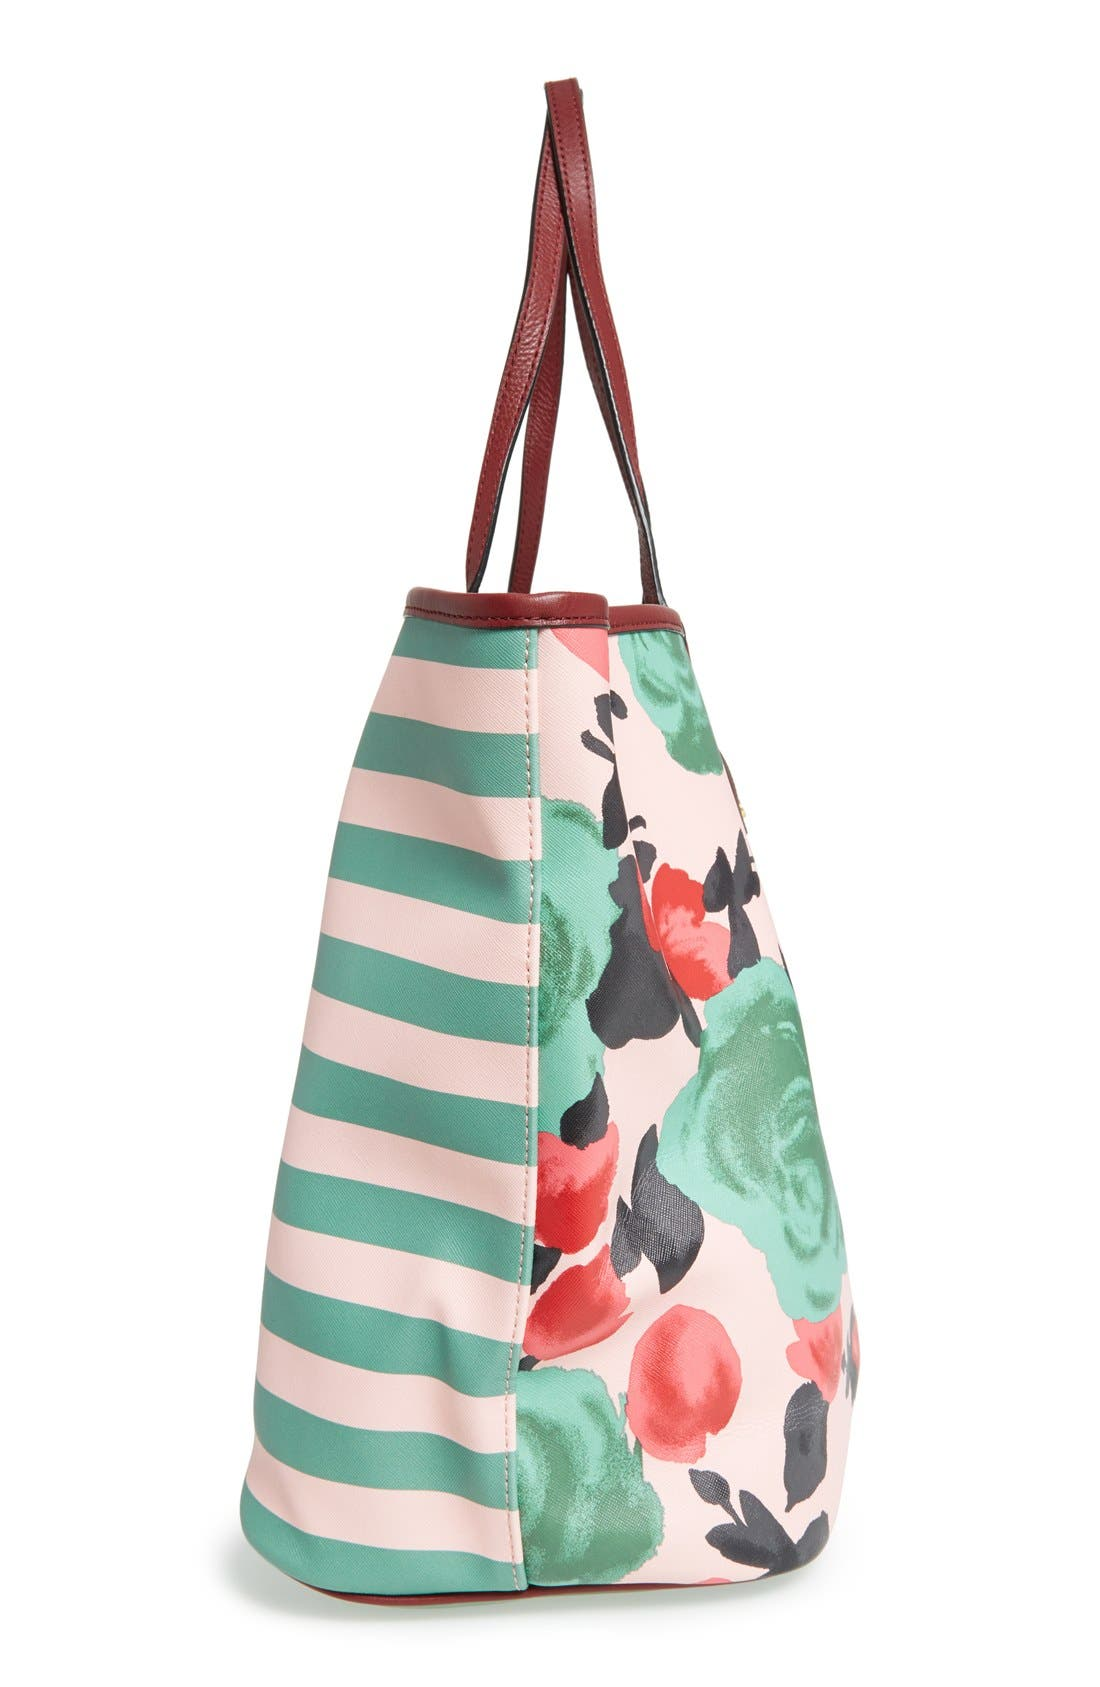 MARC JACOBS,                             MARC BY MARC JACOBS Large Beach Tote,                             Alternate thumbnail 2, color,                             650